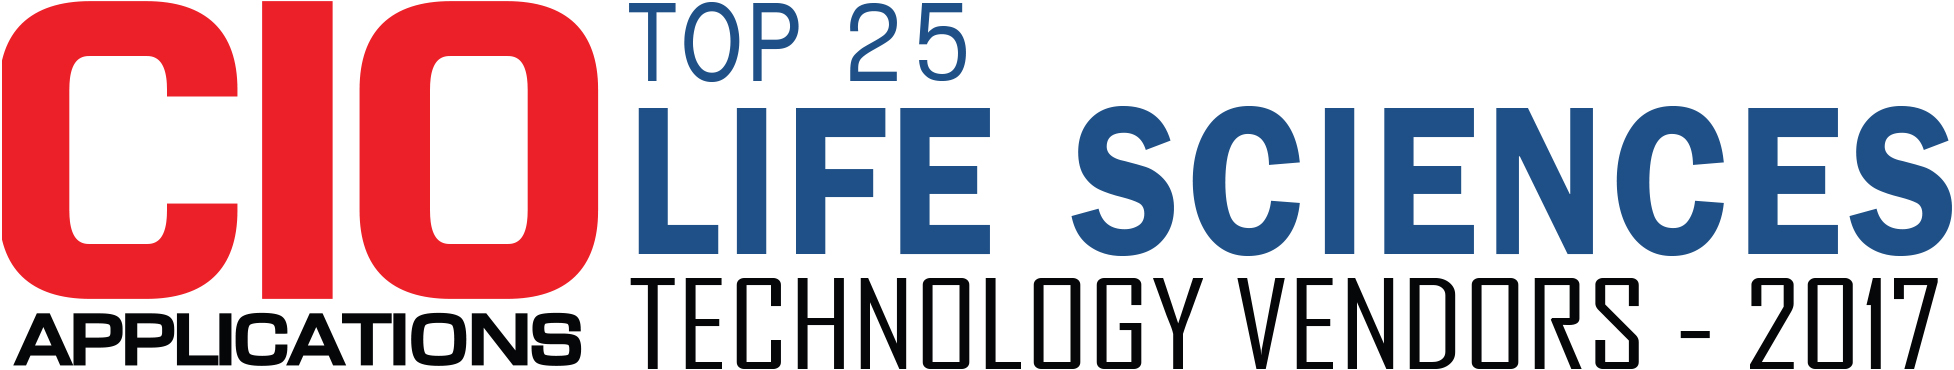 Top 25 Life Sciences Tech Companies - 2017